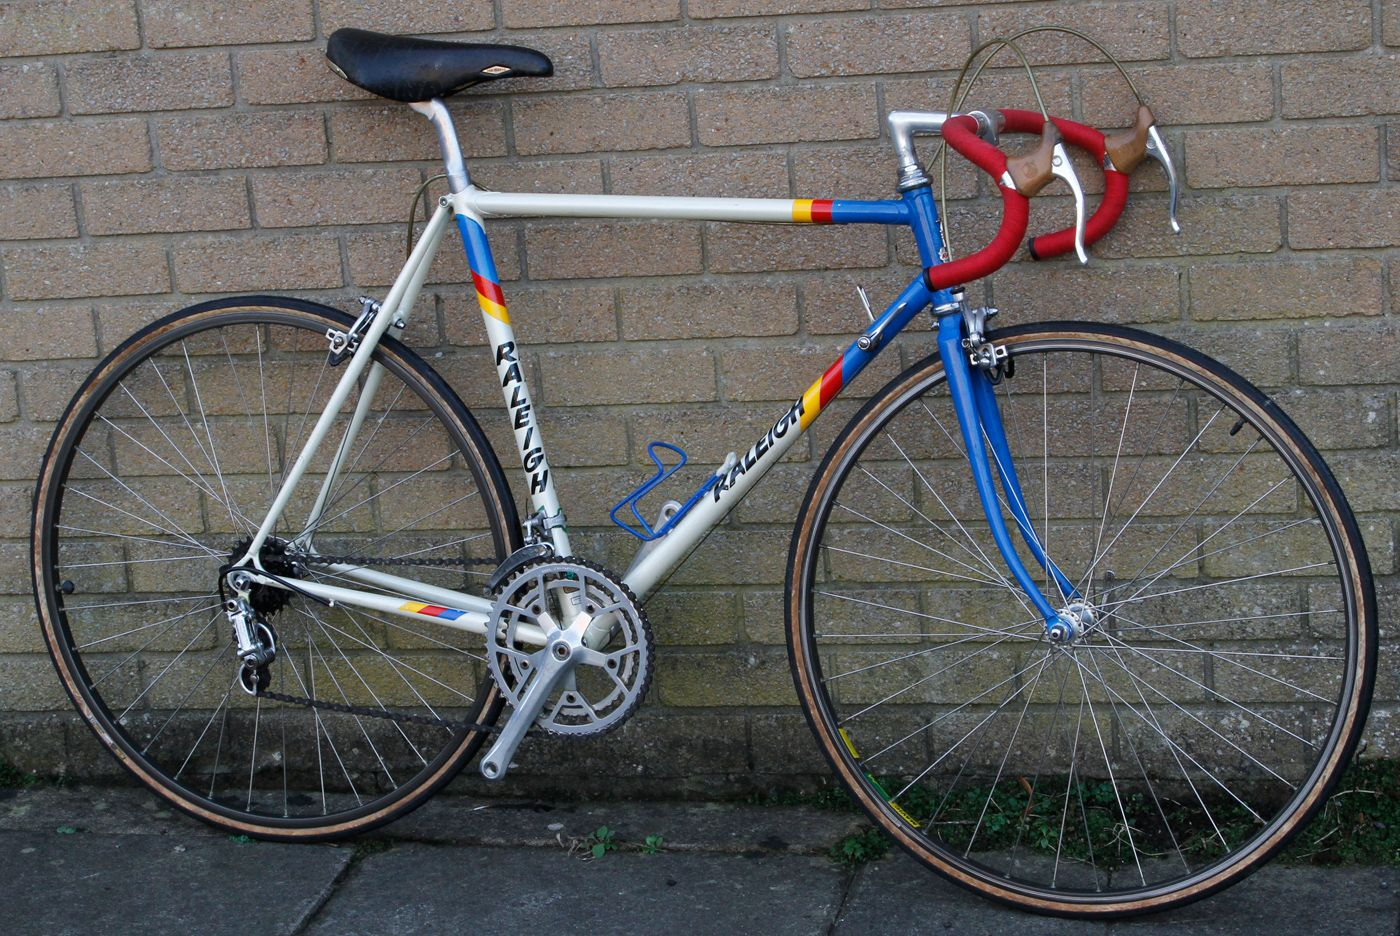 1983 Raleigh Team Replica Raleigh Bicycles Road Bikes